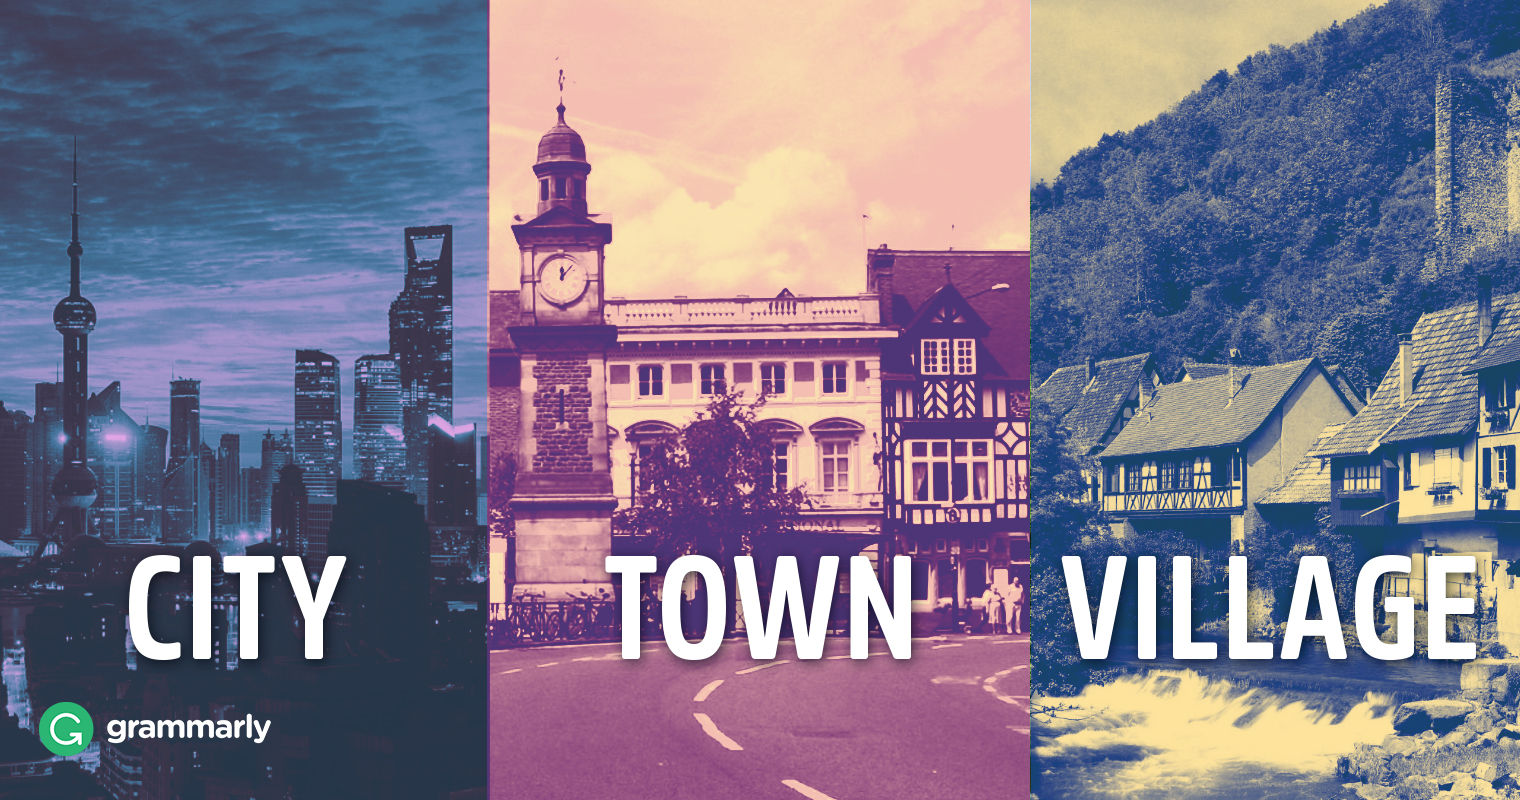 City, Town, and Village–What's the Difference? | Grammarly